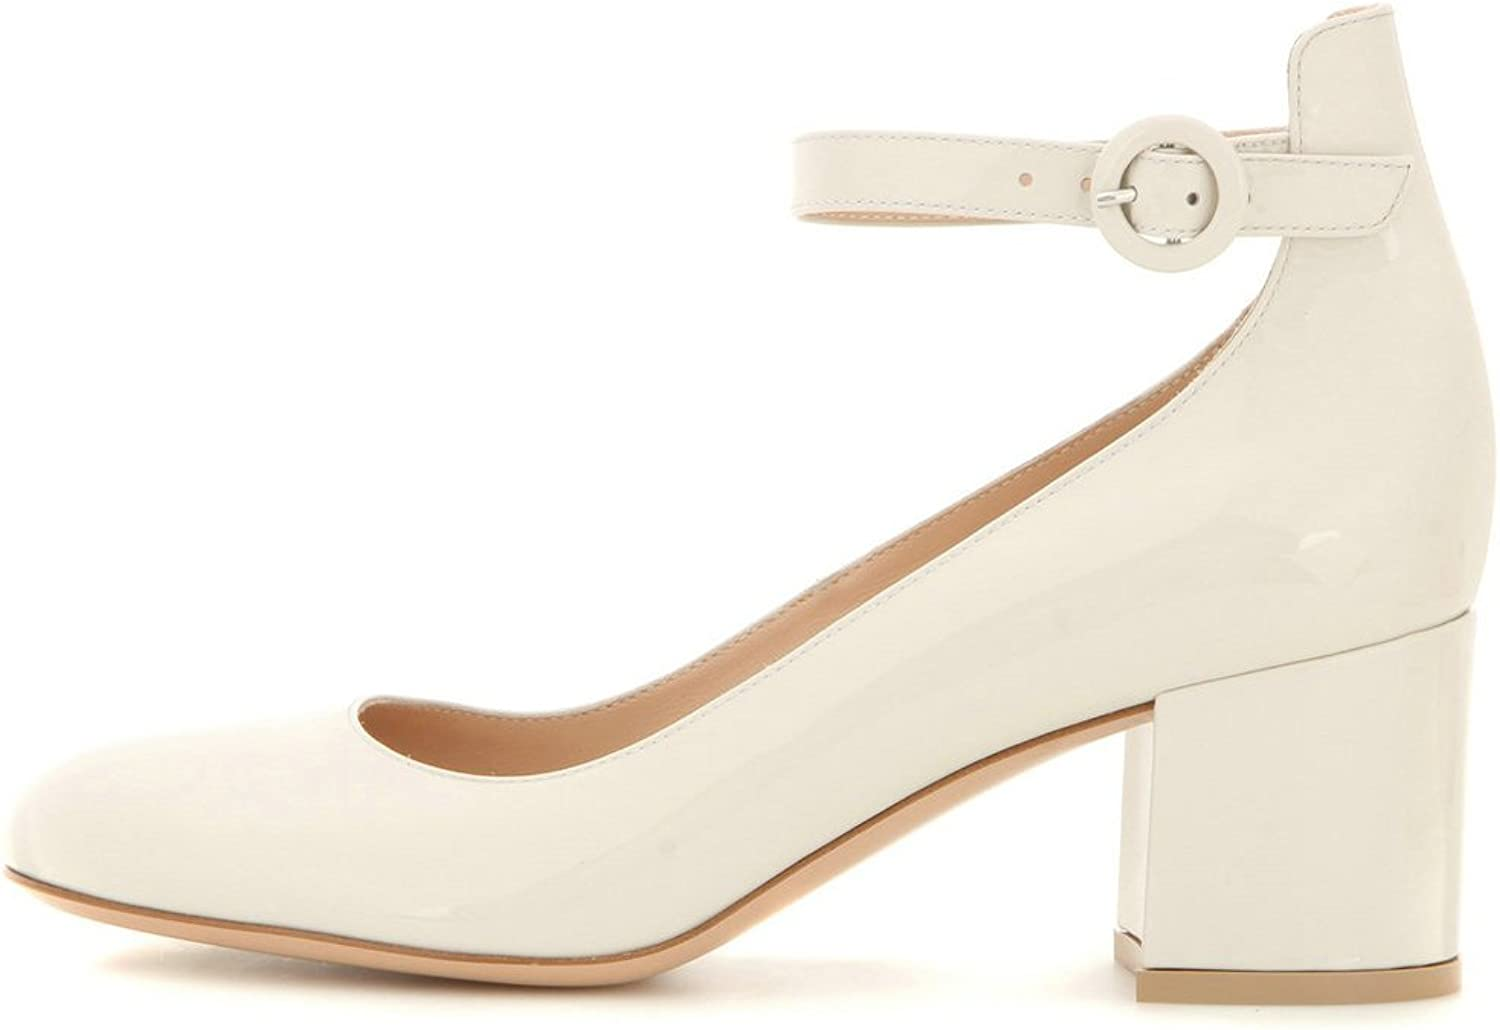 AIWEIYi Women's Fashion Round Toe Chunky High Heels Ankle Strap Party Dress Pumps Beige